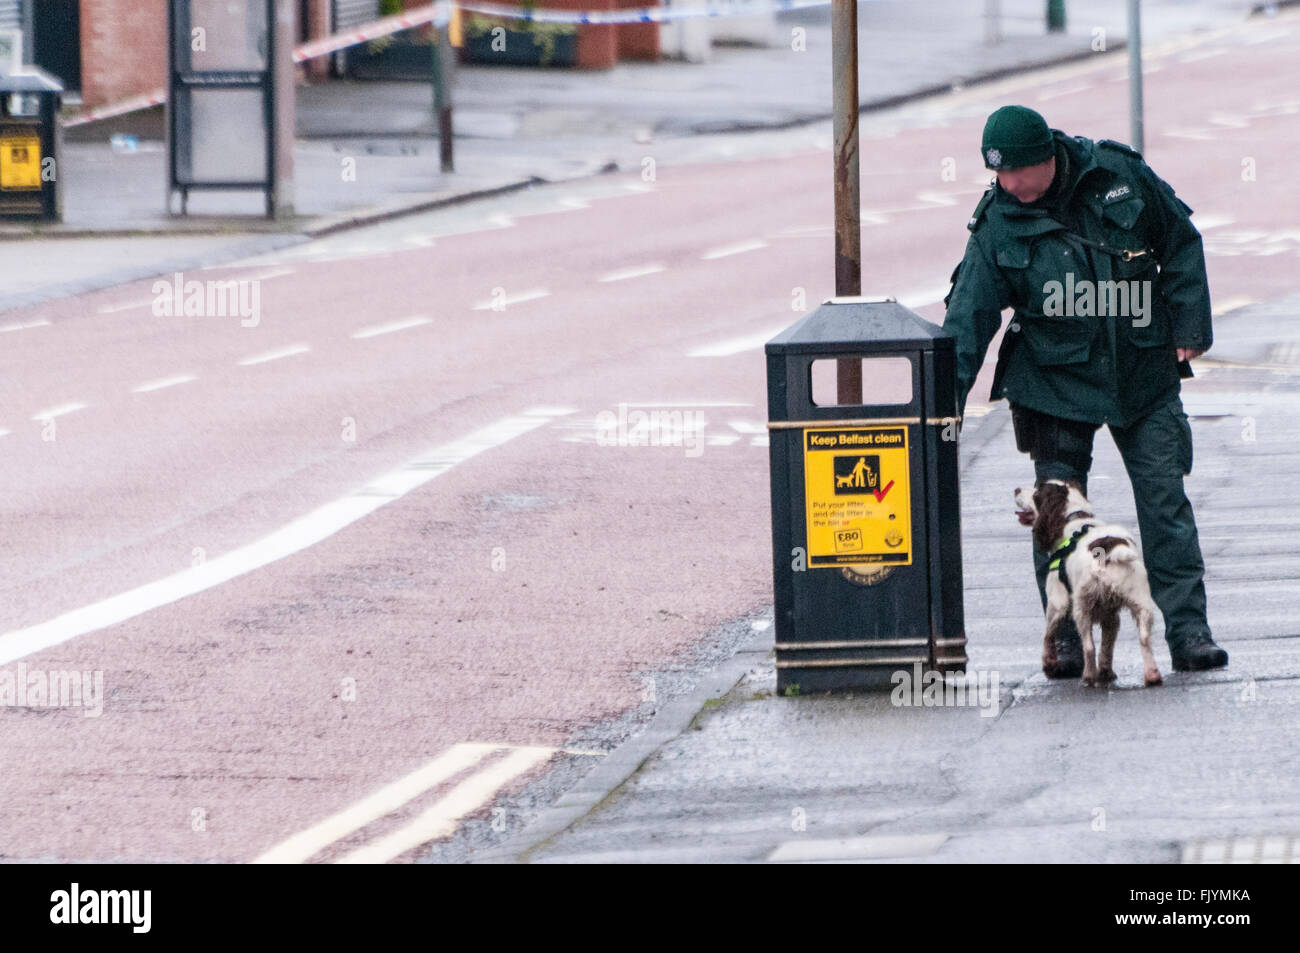 Belfast, Northern Ireland. 04 Mar 2016 - A  PSNI dog handler and his dog search for explosives in a street litter - Stock Image